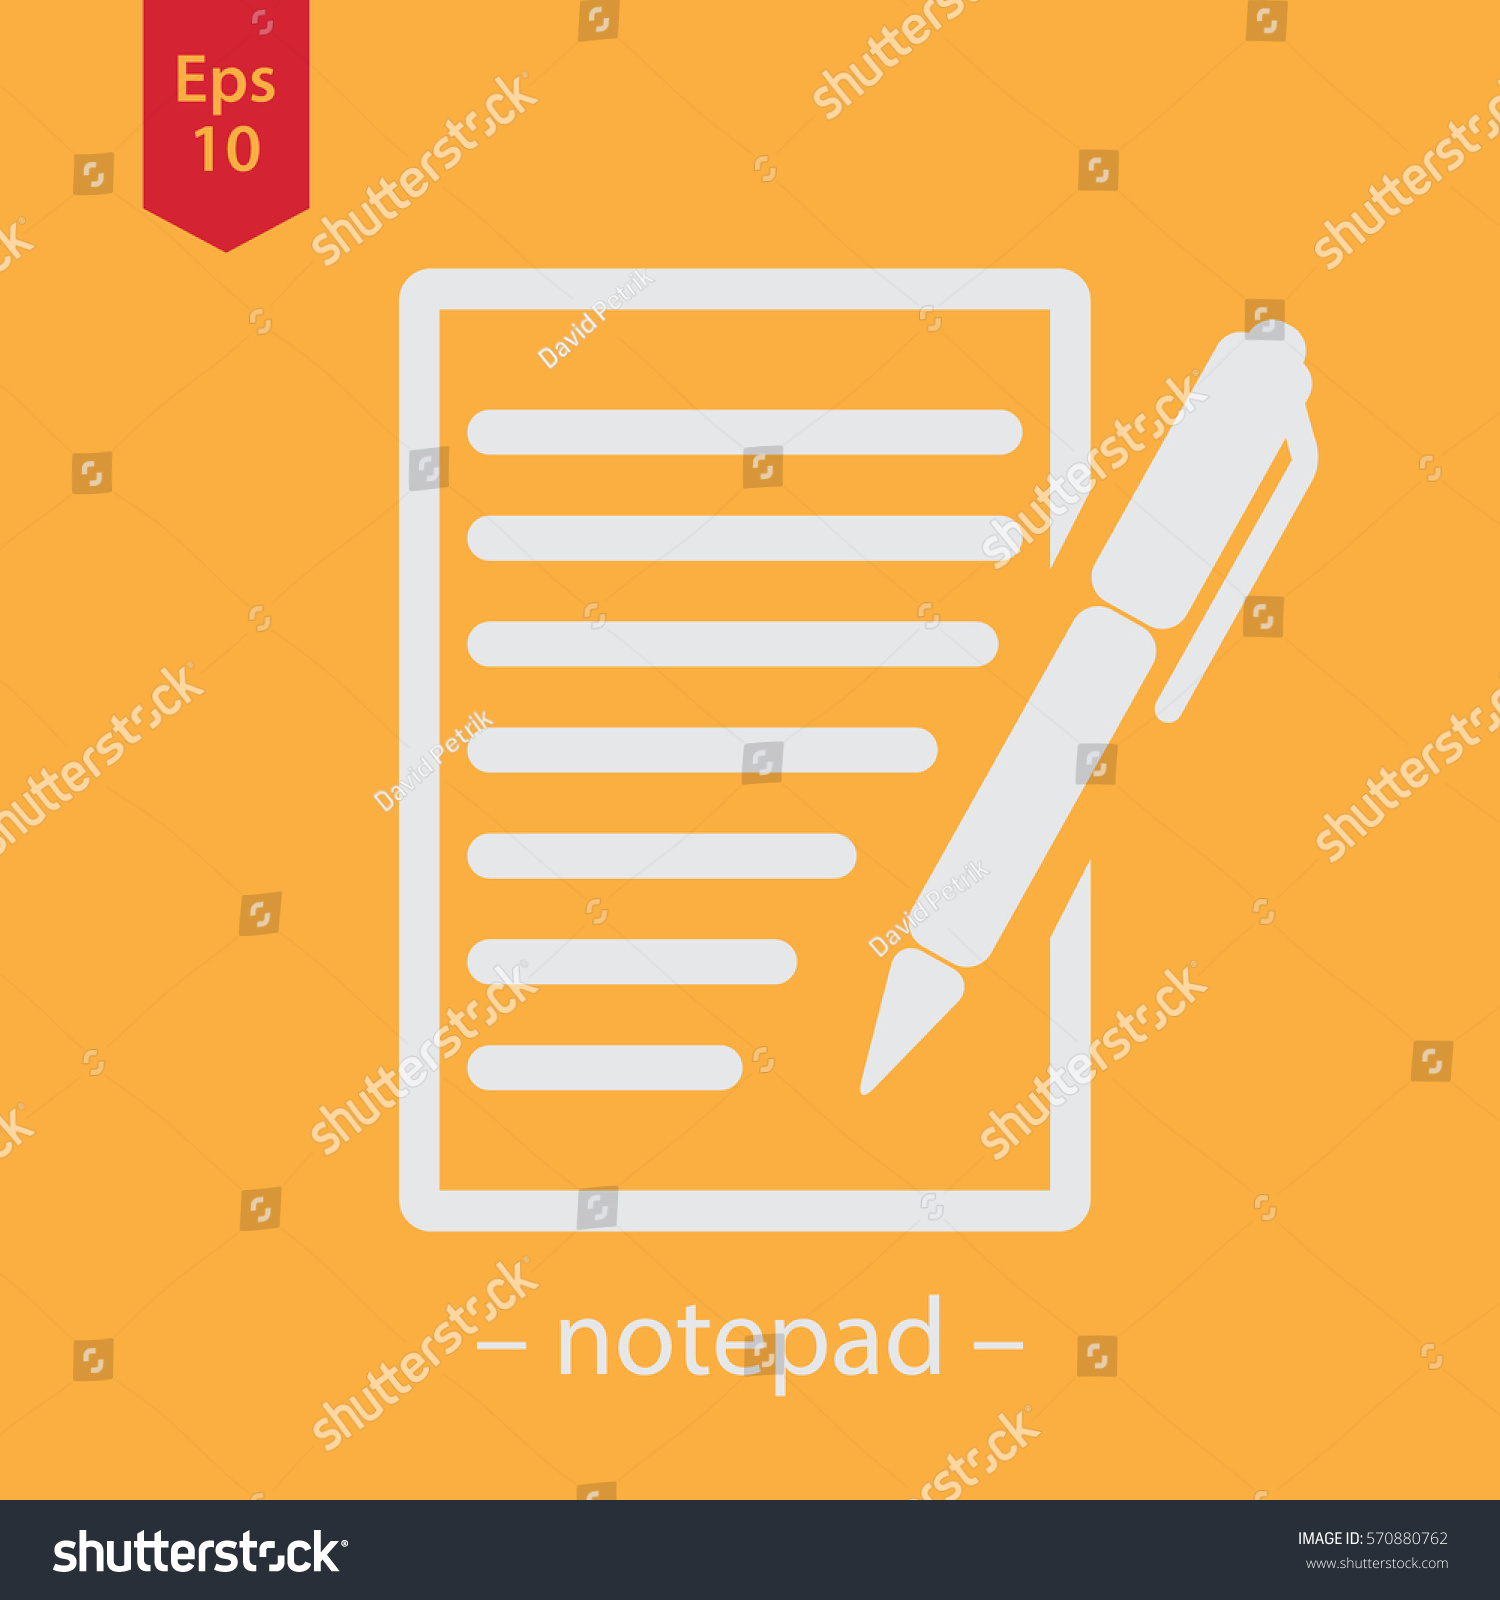 Notepad symbol simple flat icon paper stock vector 570880762 notepad symbol simple flat icon of paper and pen notebook with some text biocorpaavc Choice Image